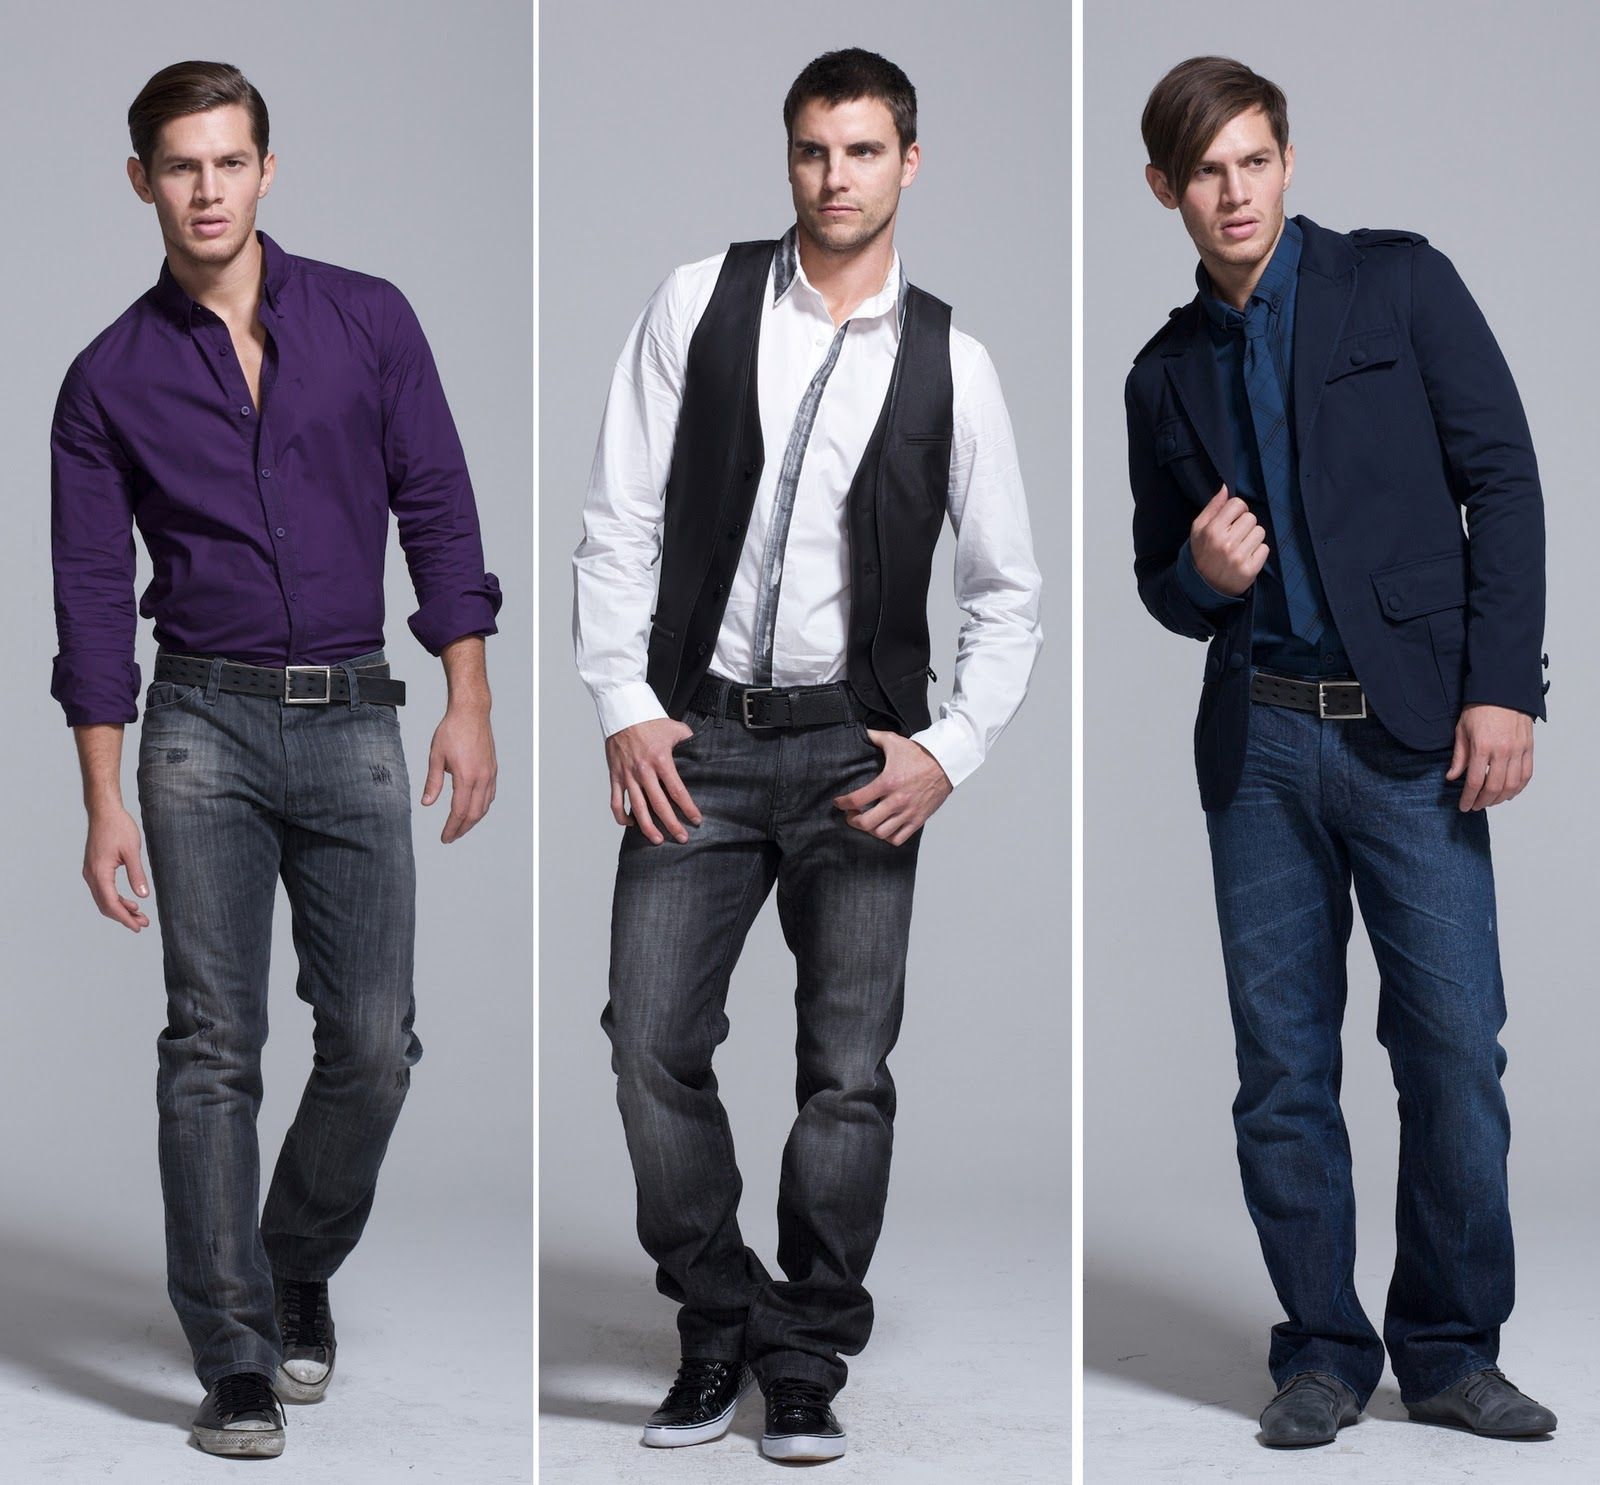 Jeans For Men Fashion Photo Album - Fashion Trends and Models